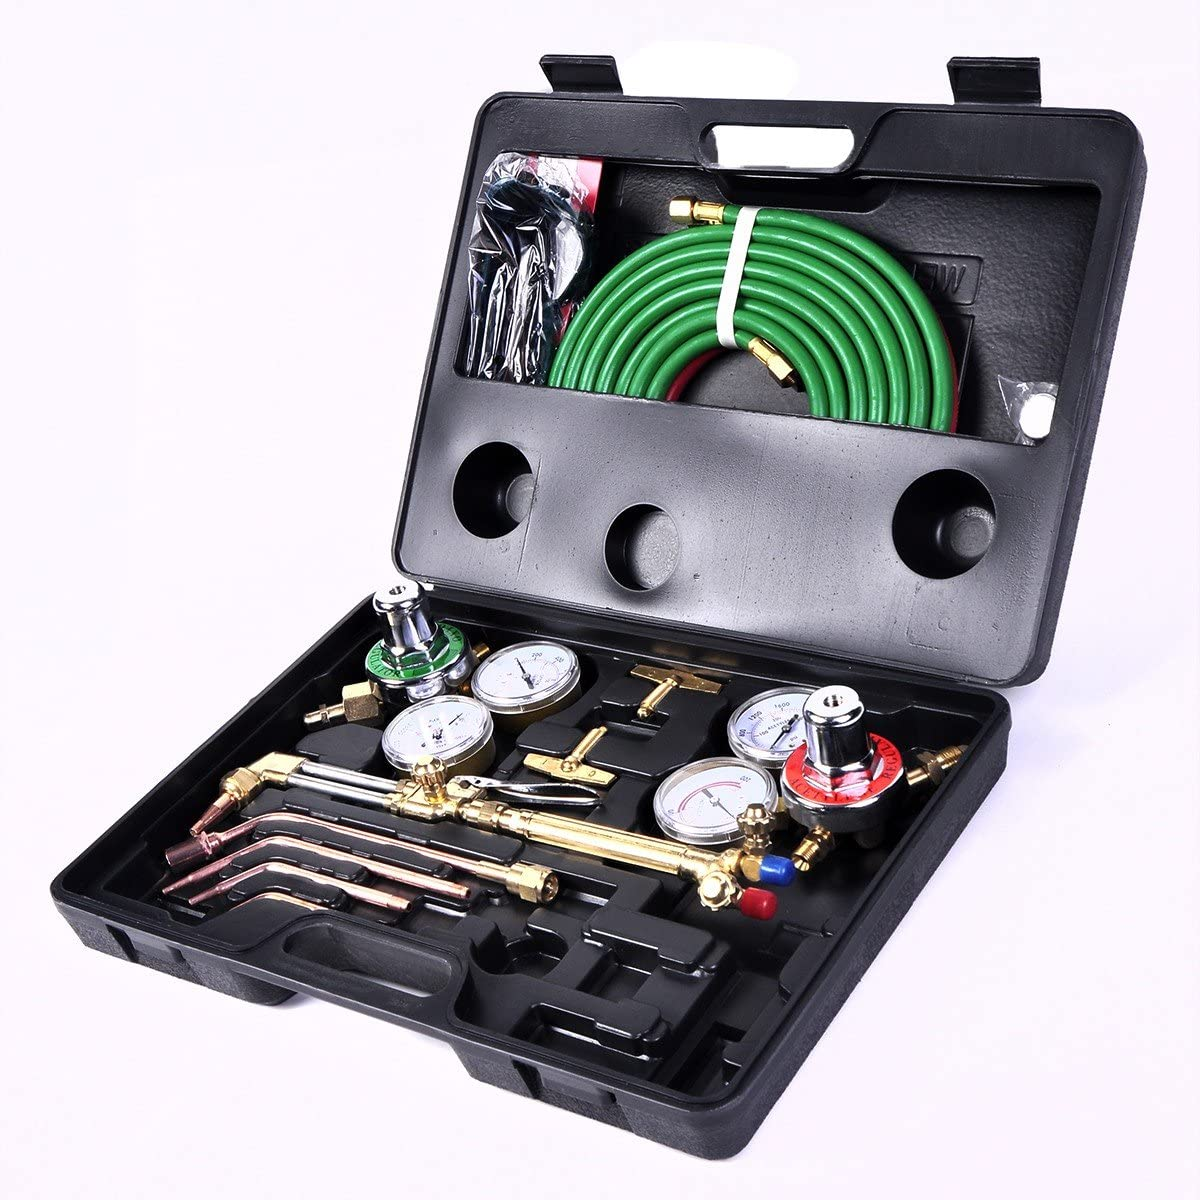 Gas Welding Cutting Kit Tool Oxy Acetylene Torch Brazing Fits VICTOR Sturdy